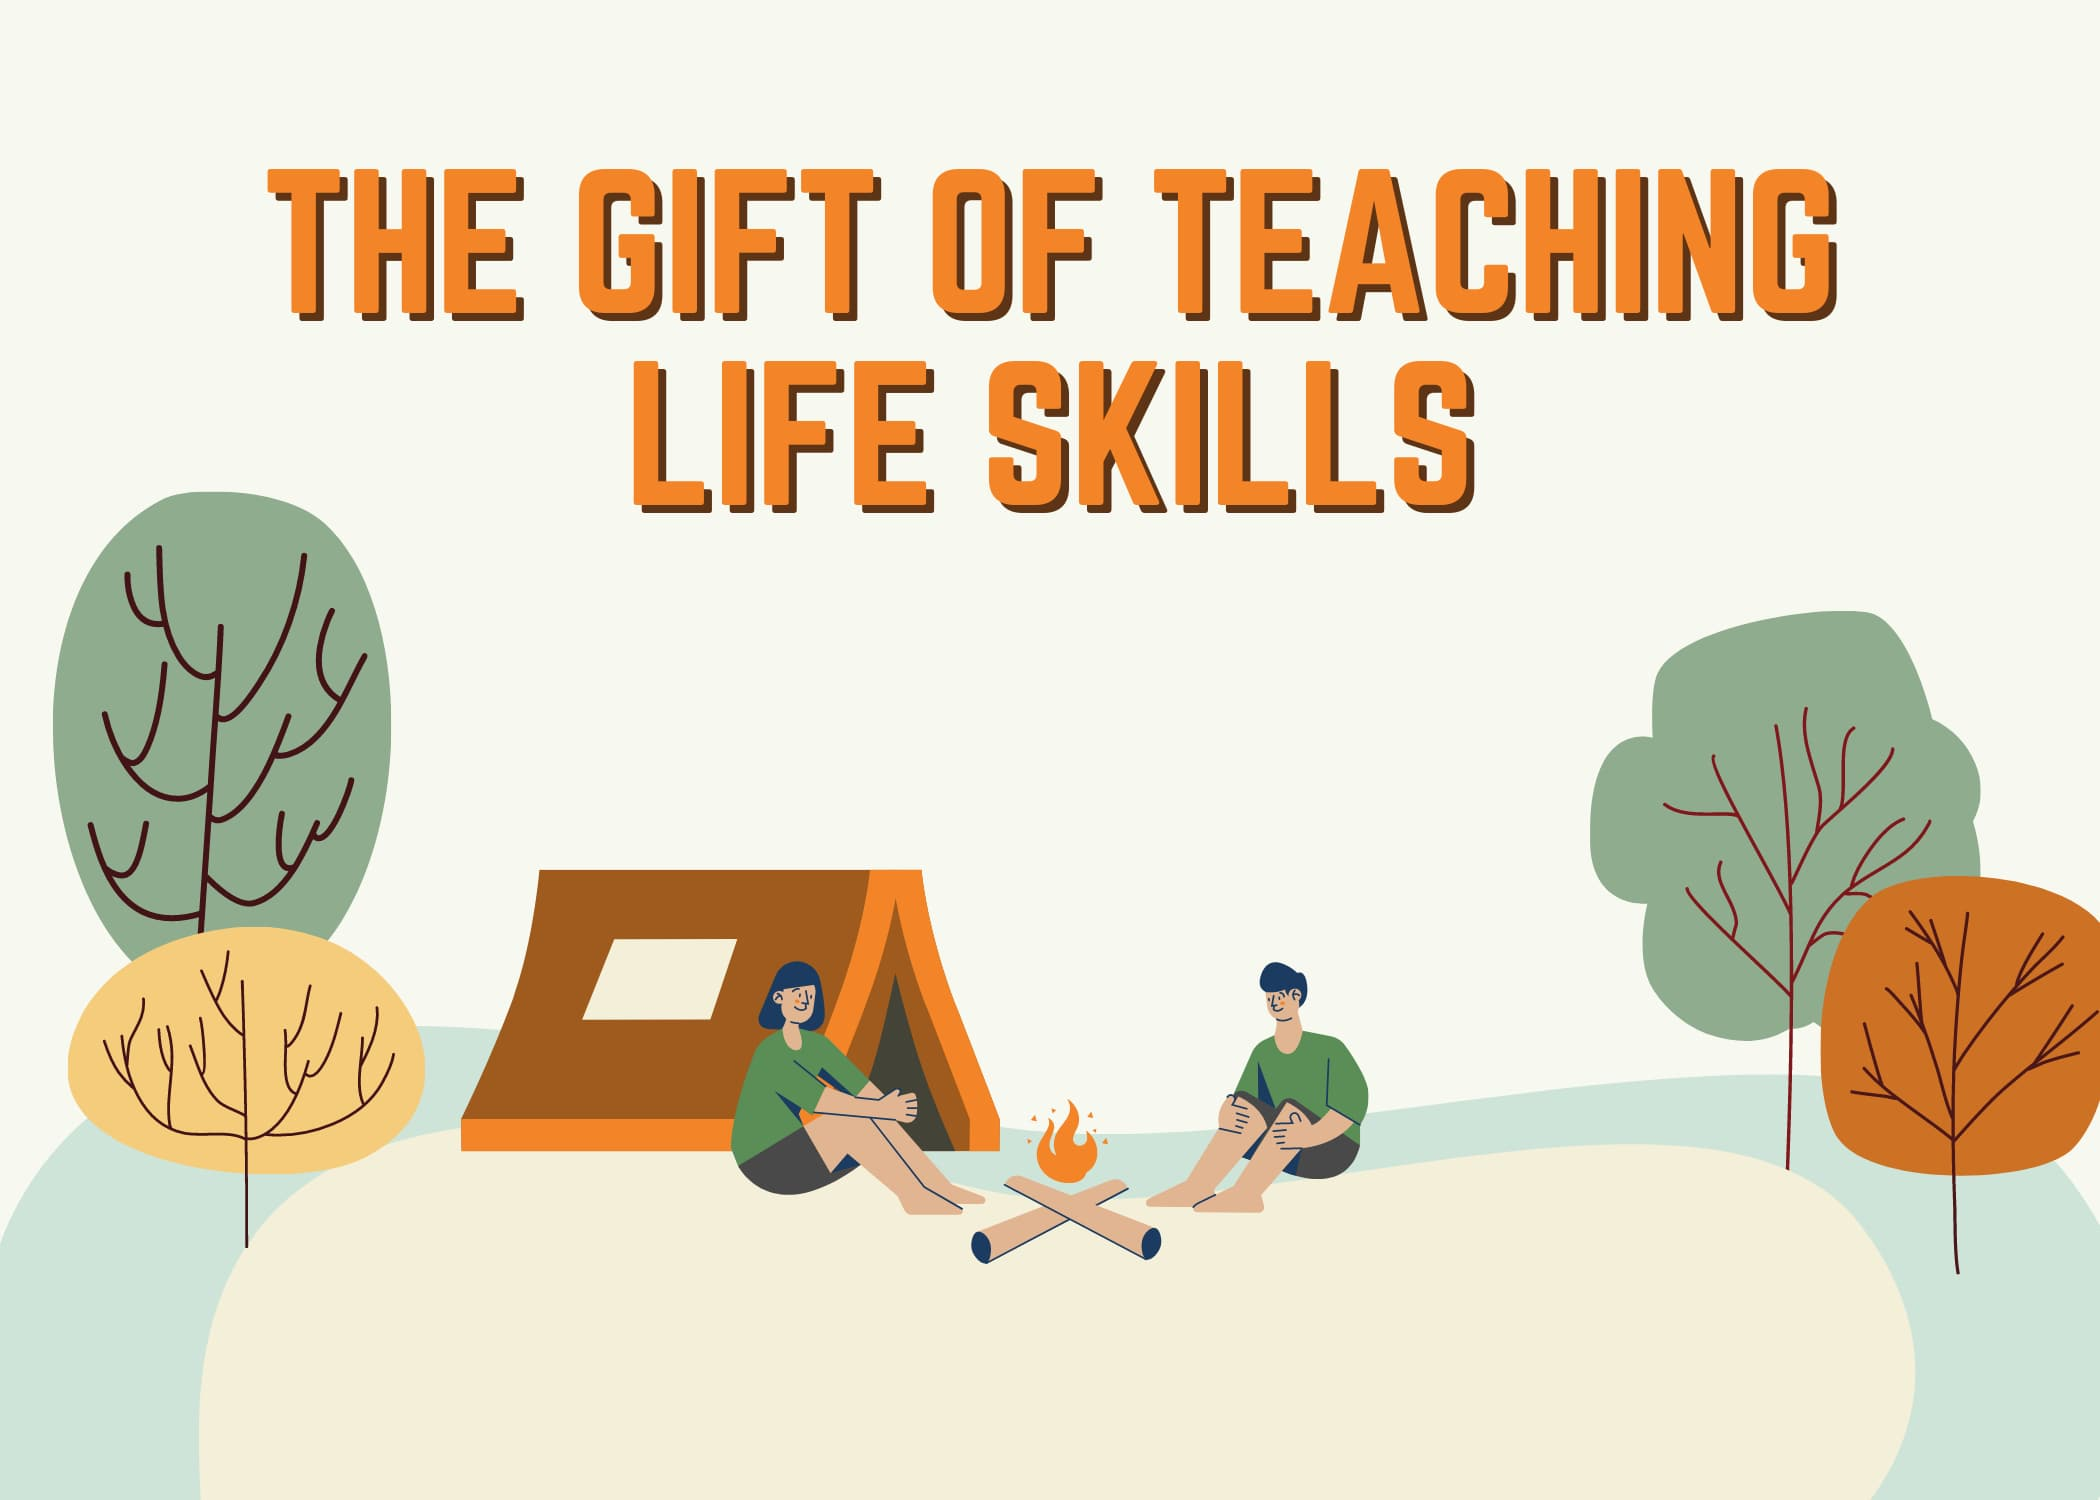 Gift of Teaching Life Skills